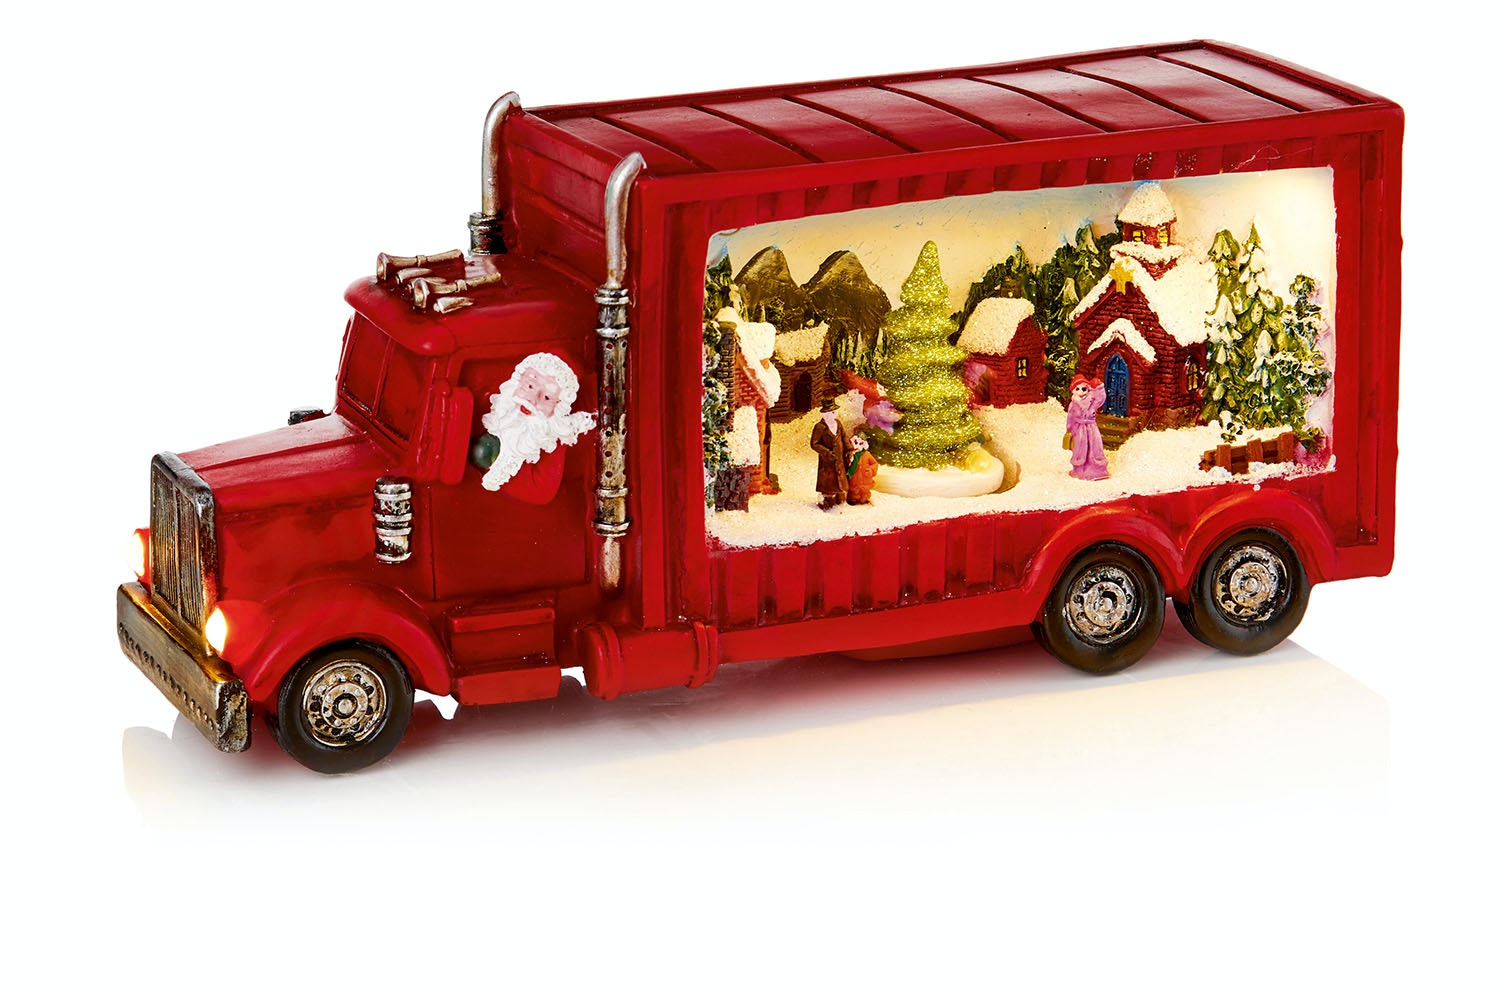 Red Truck With Christmas Tree Scene